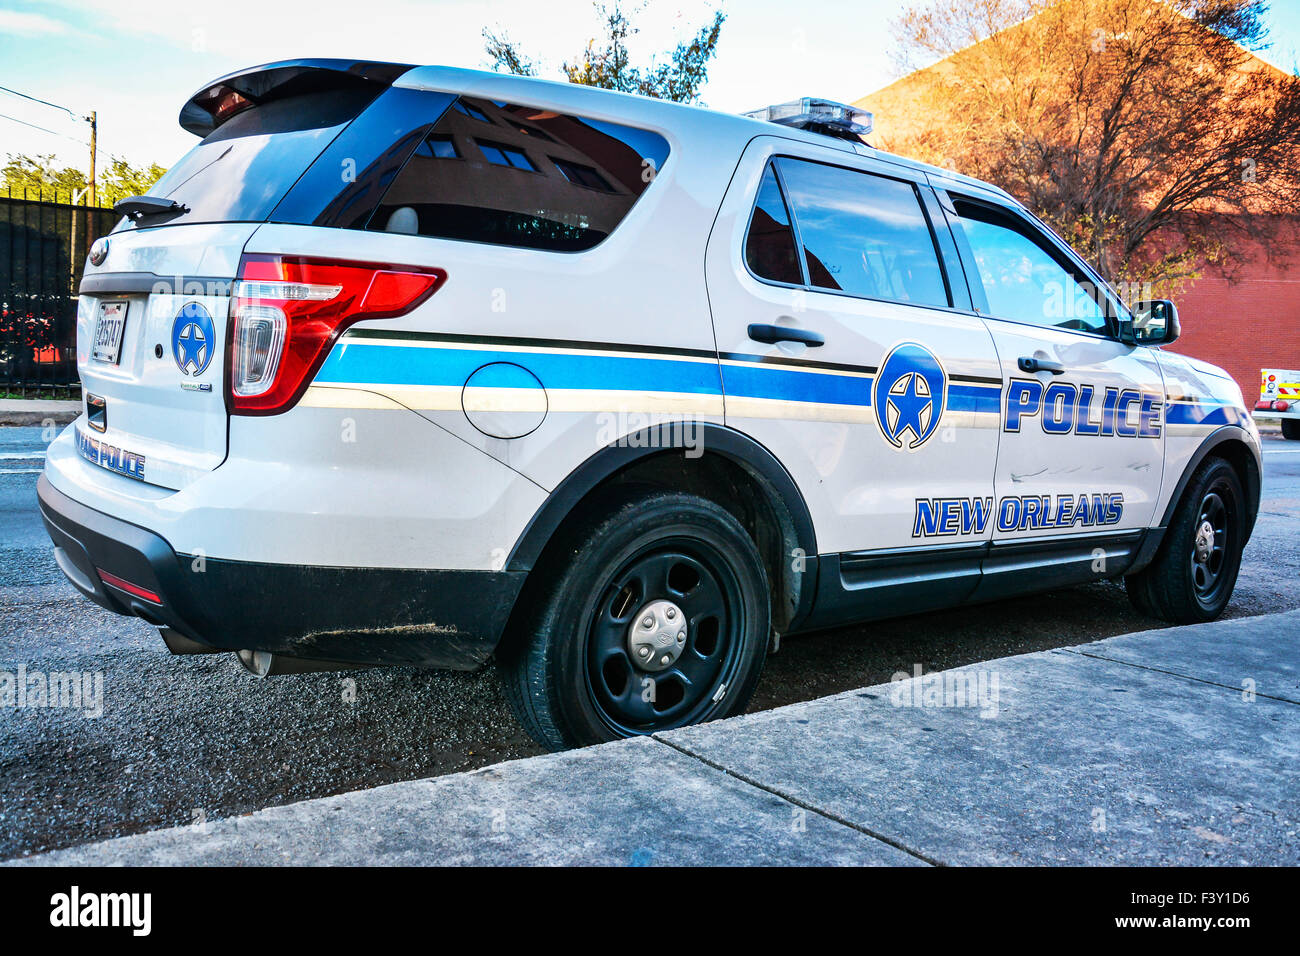 A blue and white parked police car or cruiser in new for Police orleans